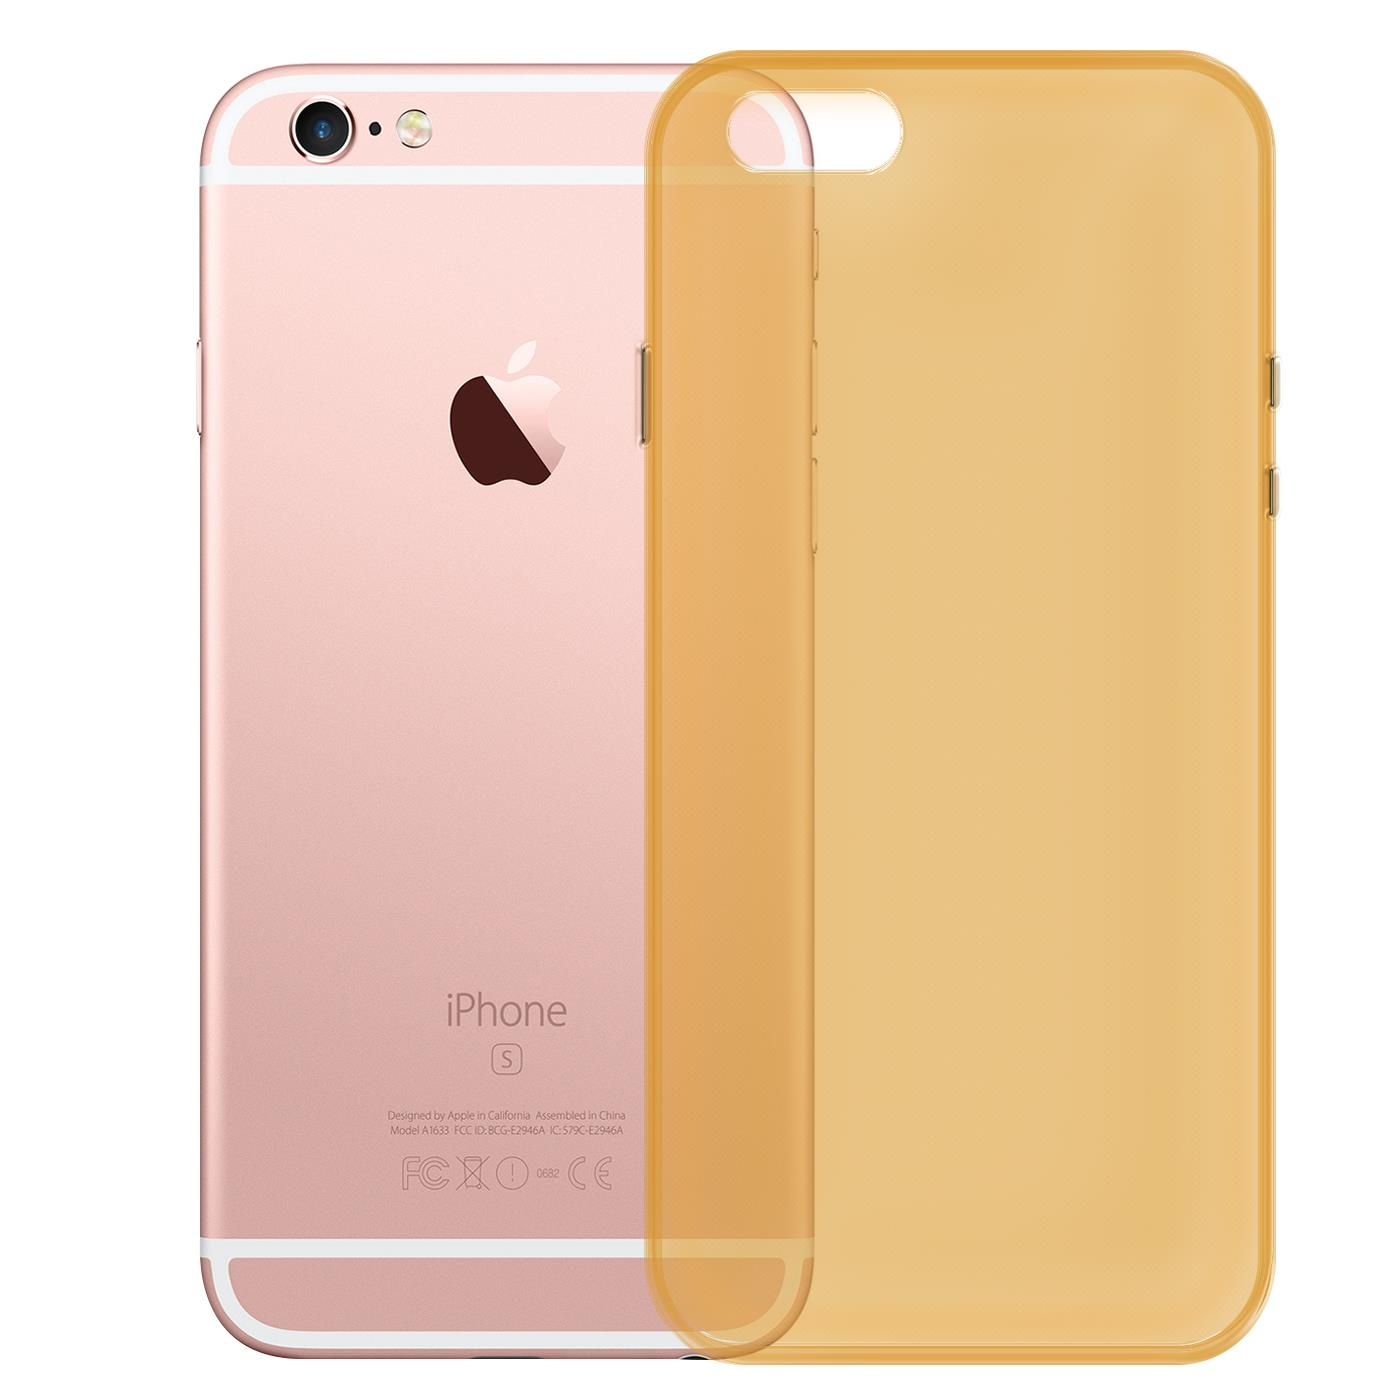 Ultra-Slim-Case-fuer-Apple-iPhone-Huelle-Handyhuelle-Schutz-Cover-Silikon-Tasche